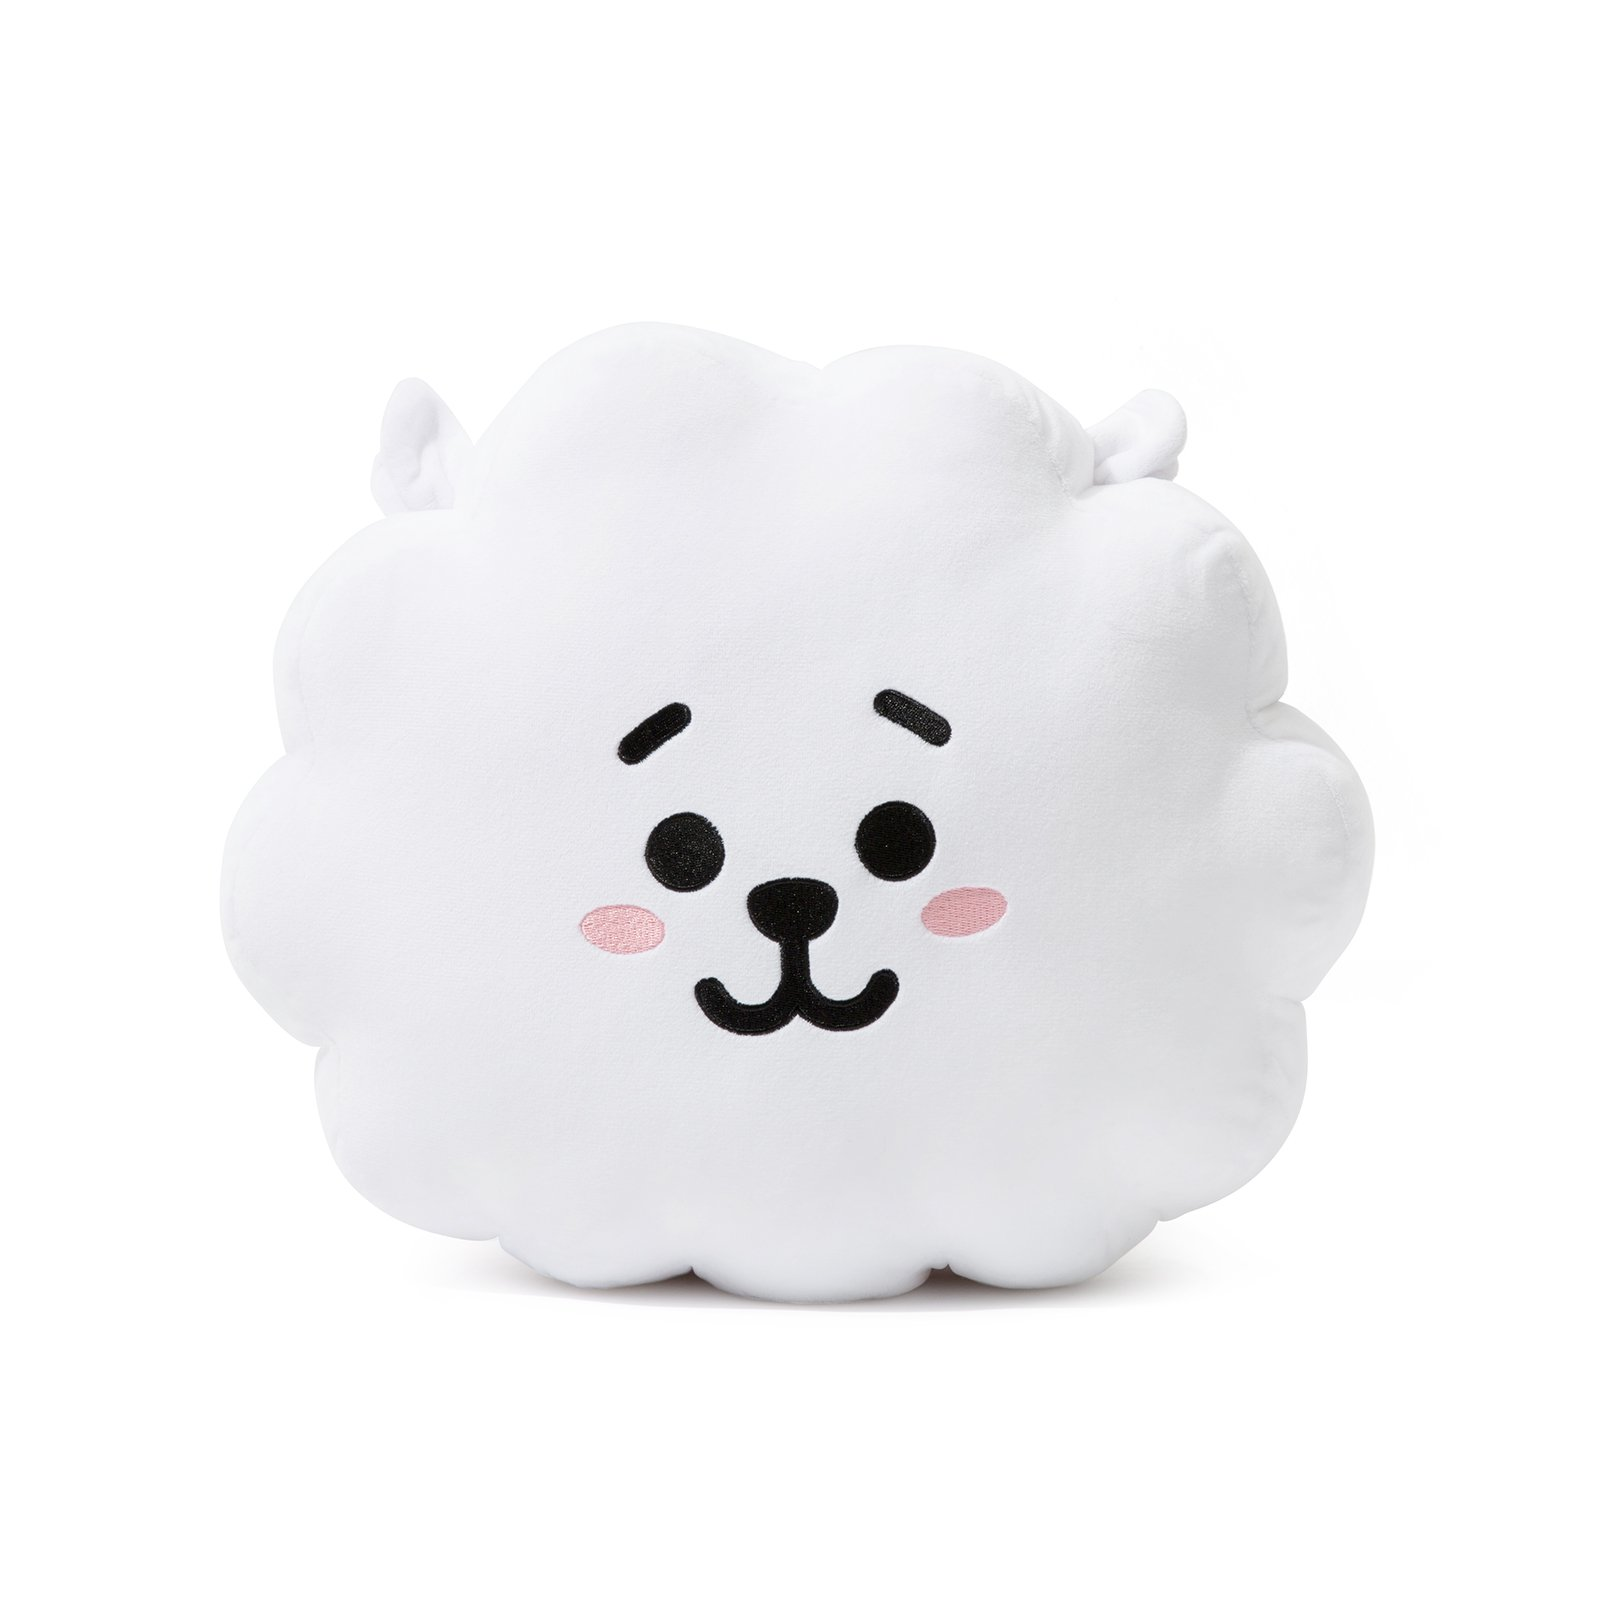 BT21 Official Merchandise by Line Friends - RJ Decorative Throw Pillows Cushion, 11 Inch by LINE FRIENDS